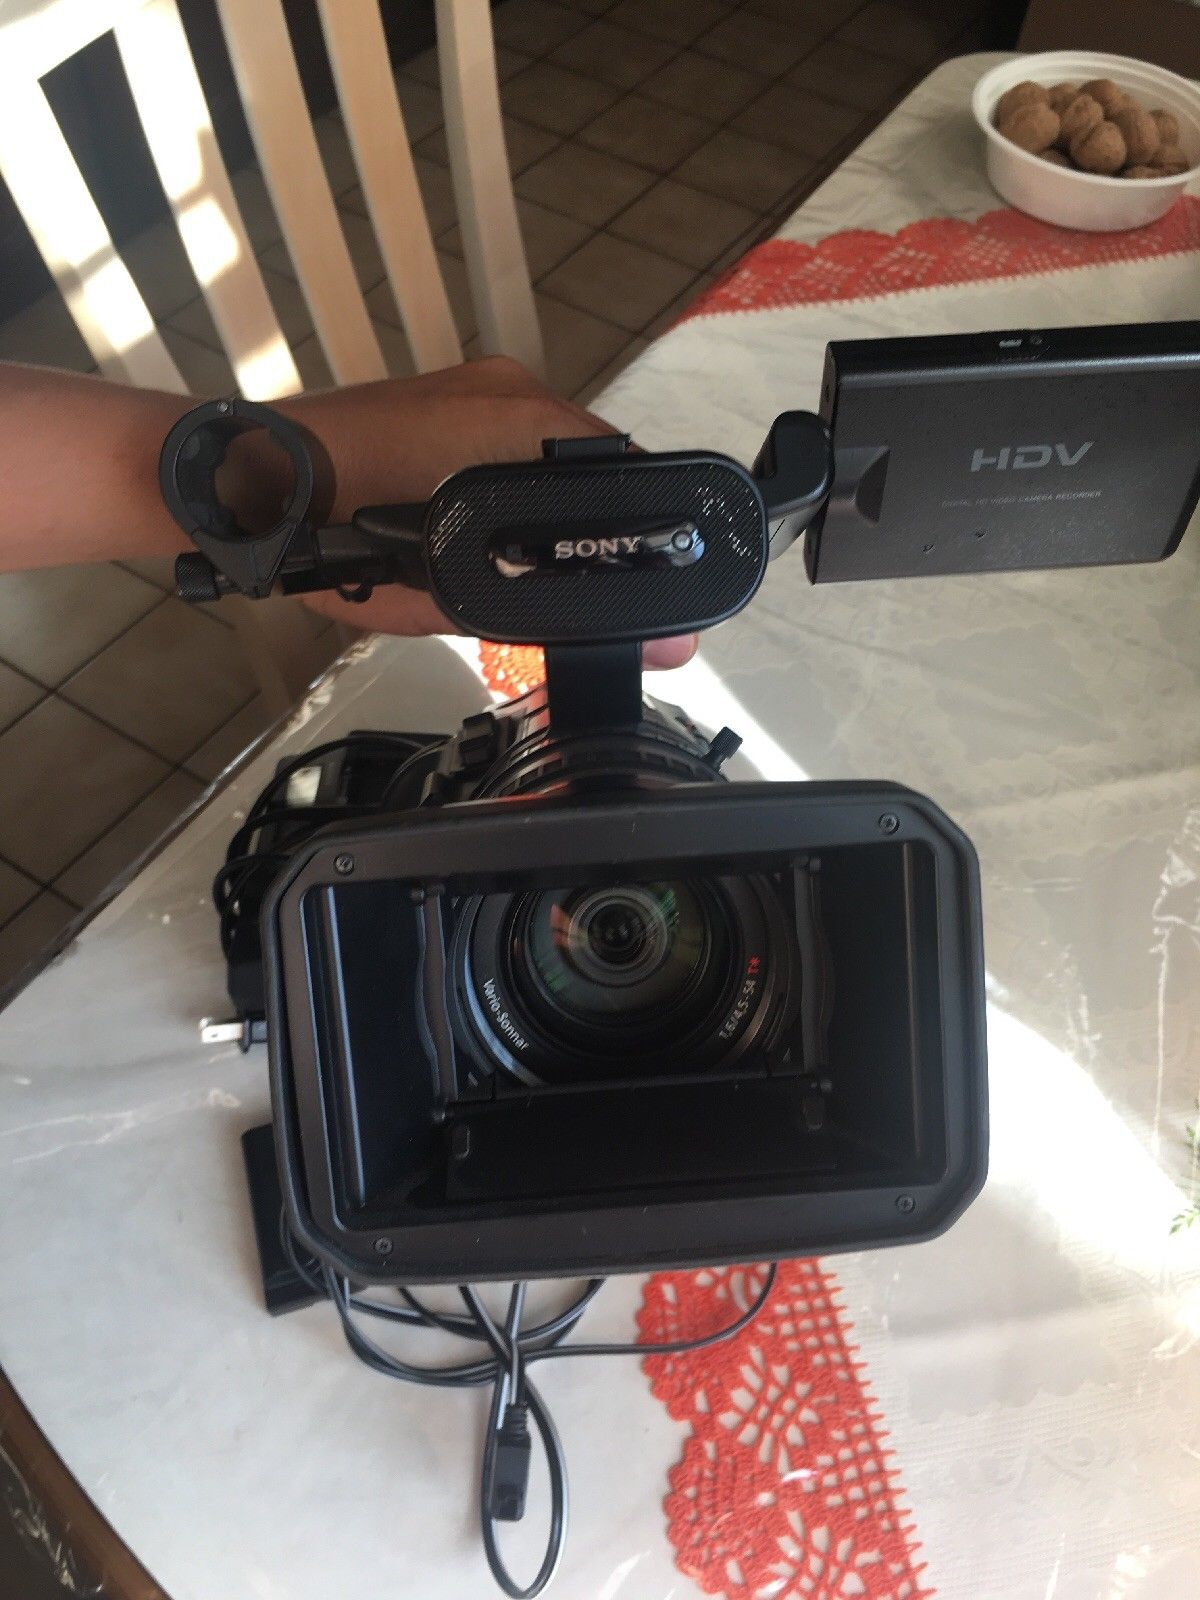 Sony HVR-Z1U Digital HD Video Camera Recorder Camcorder